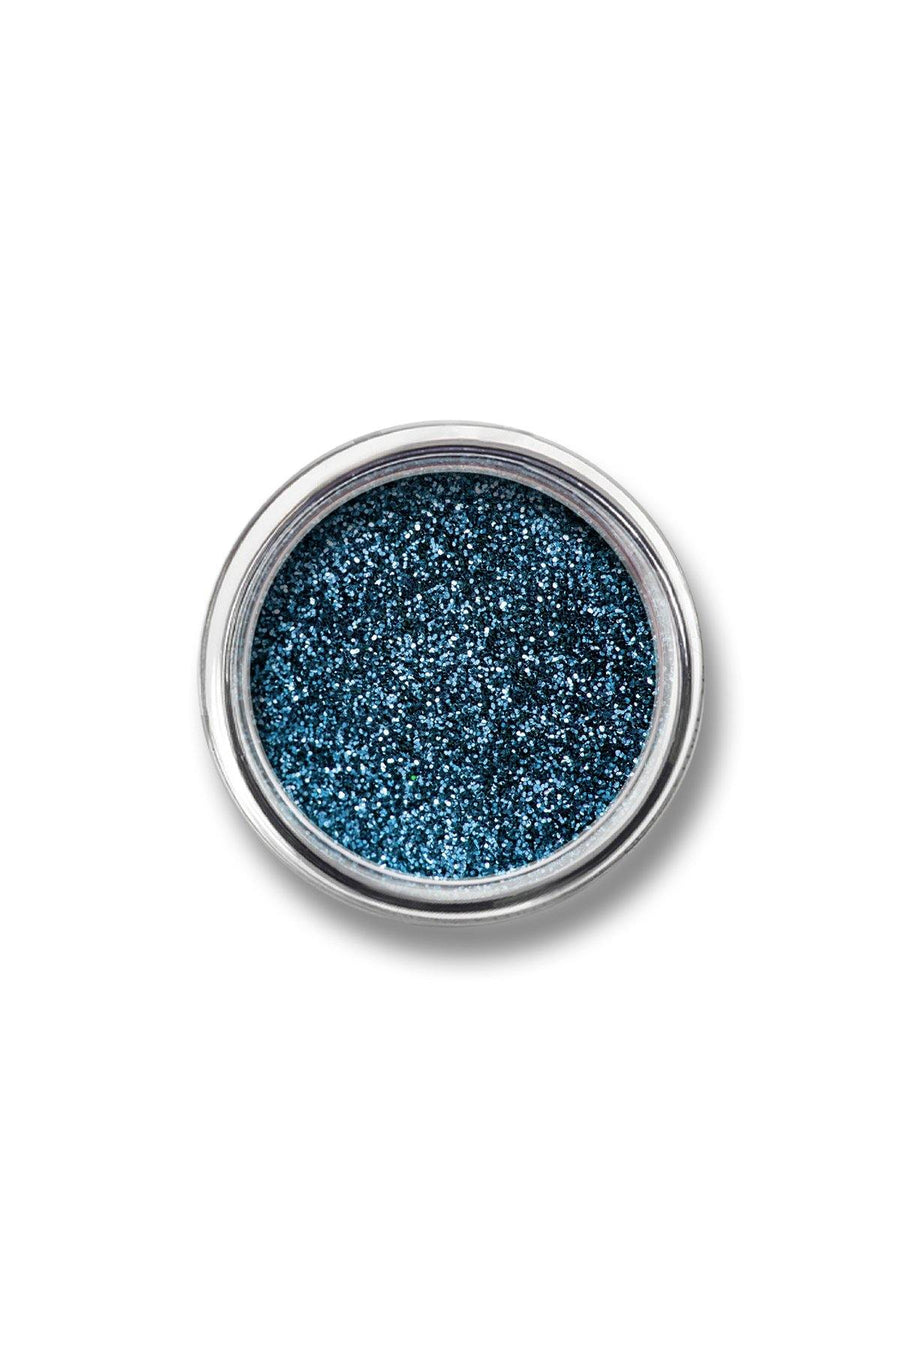 Glitter Powder #16 - Deep Turquoise - Blend Mineral Cosmetics